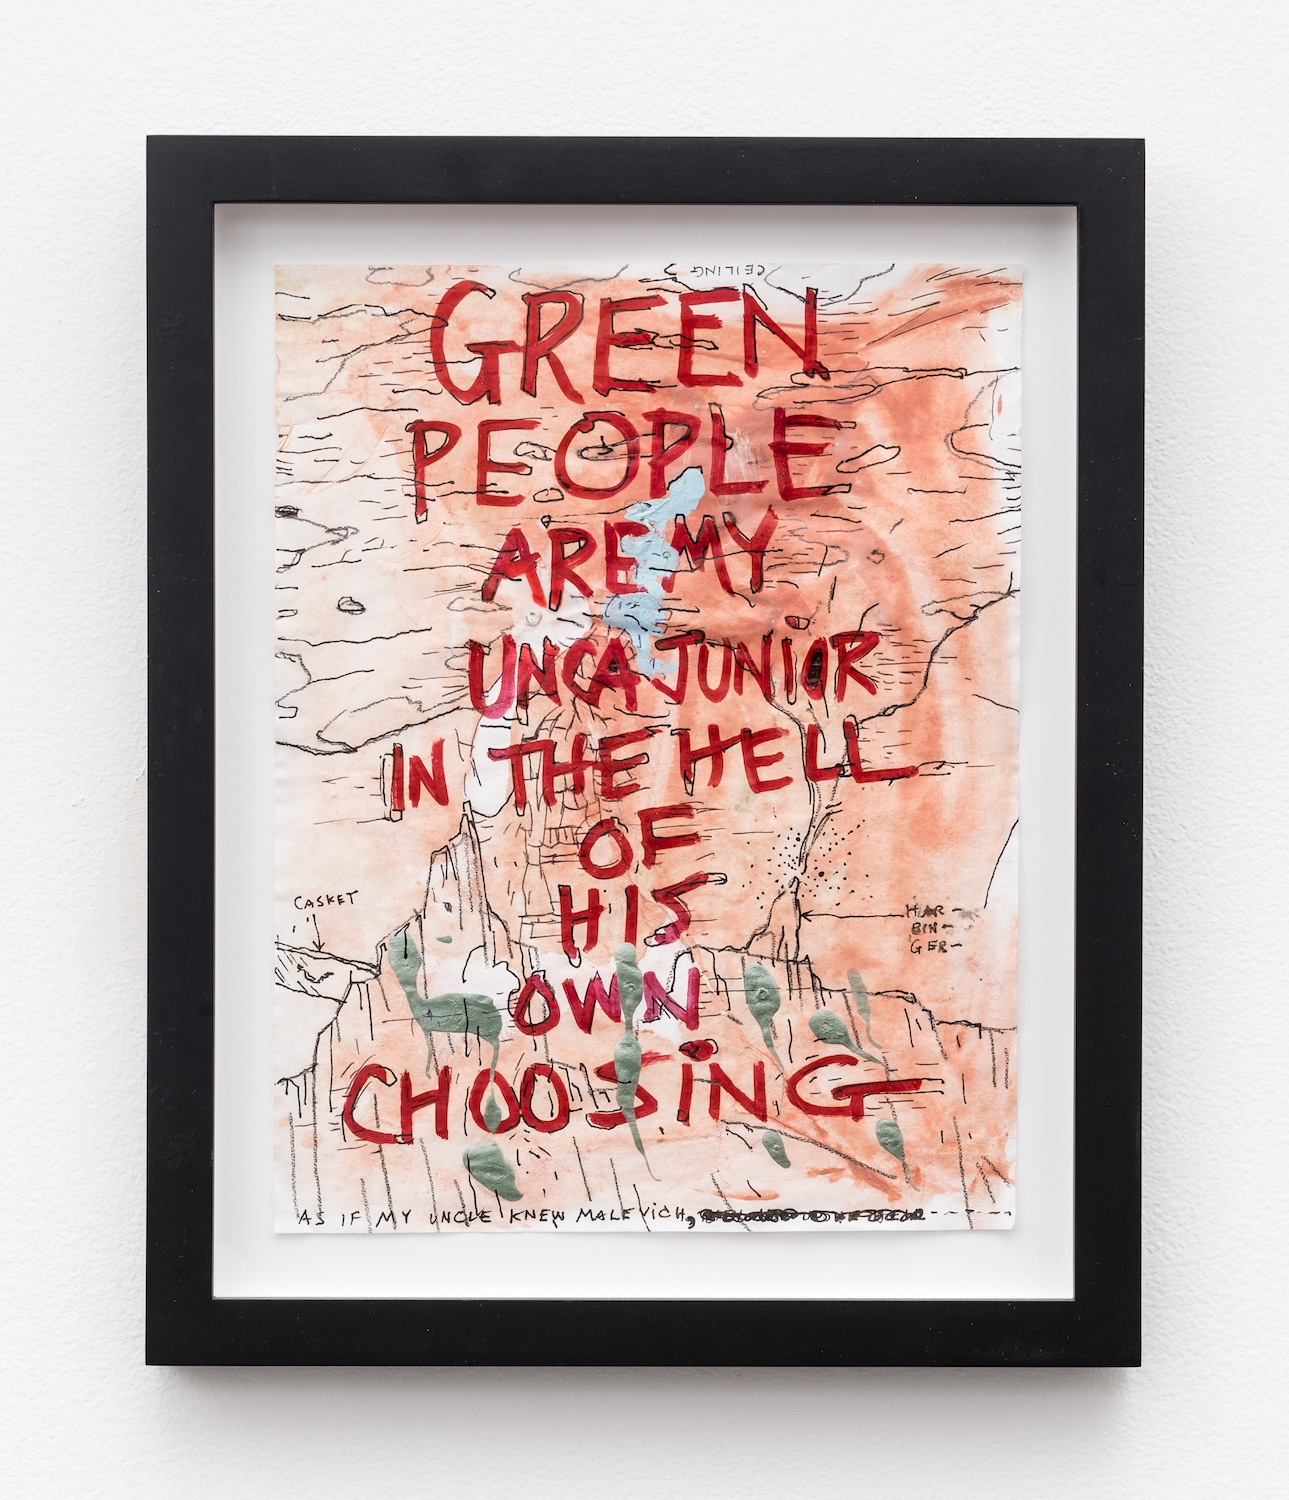 William Pope.L  Green People Are My Unca Junior In The Hell Of His Own Choosing  2011 Mixed media on paper 11h x 8 ½w in WP002